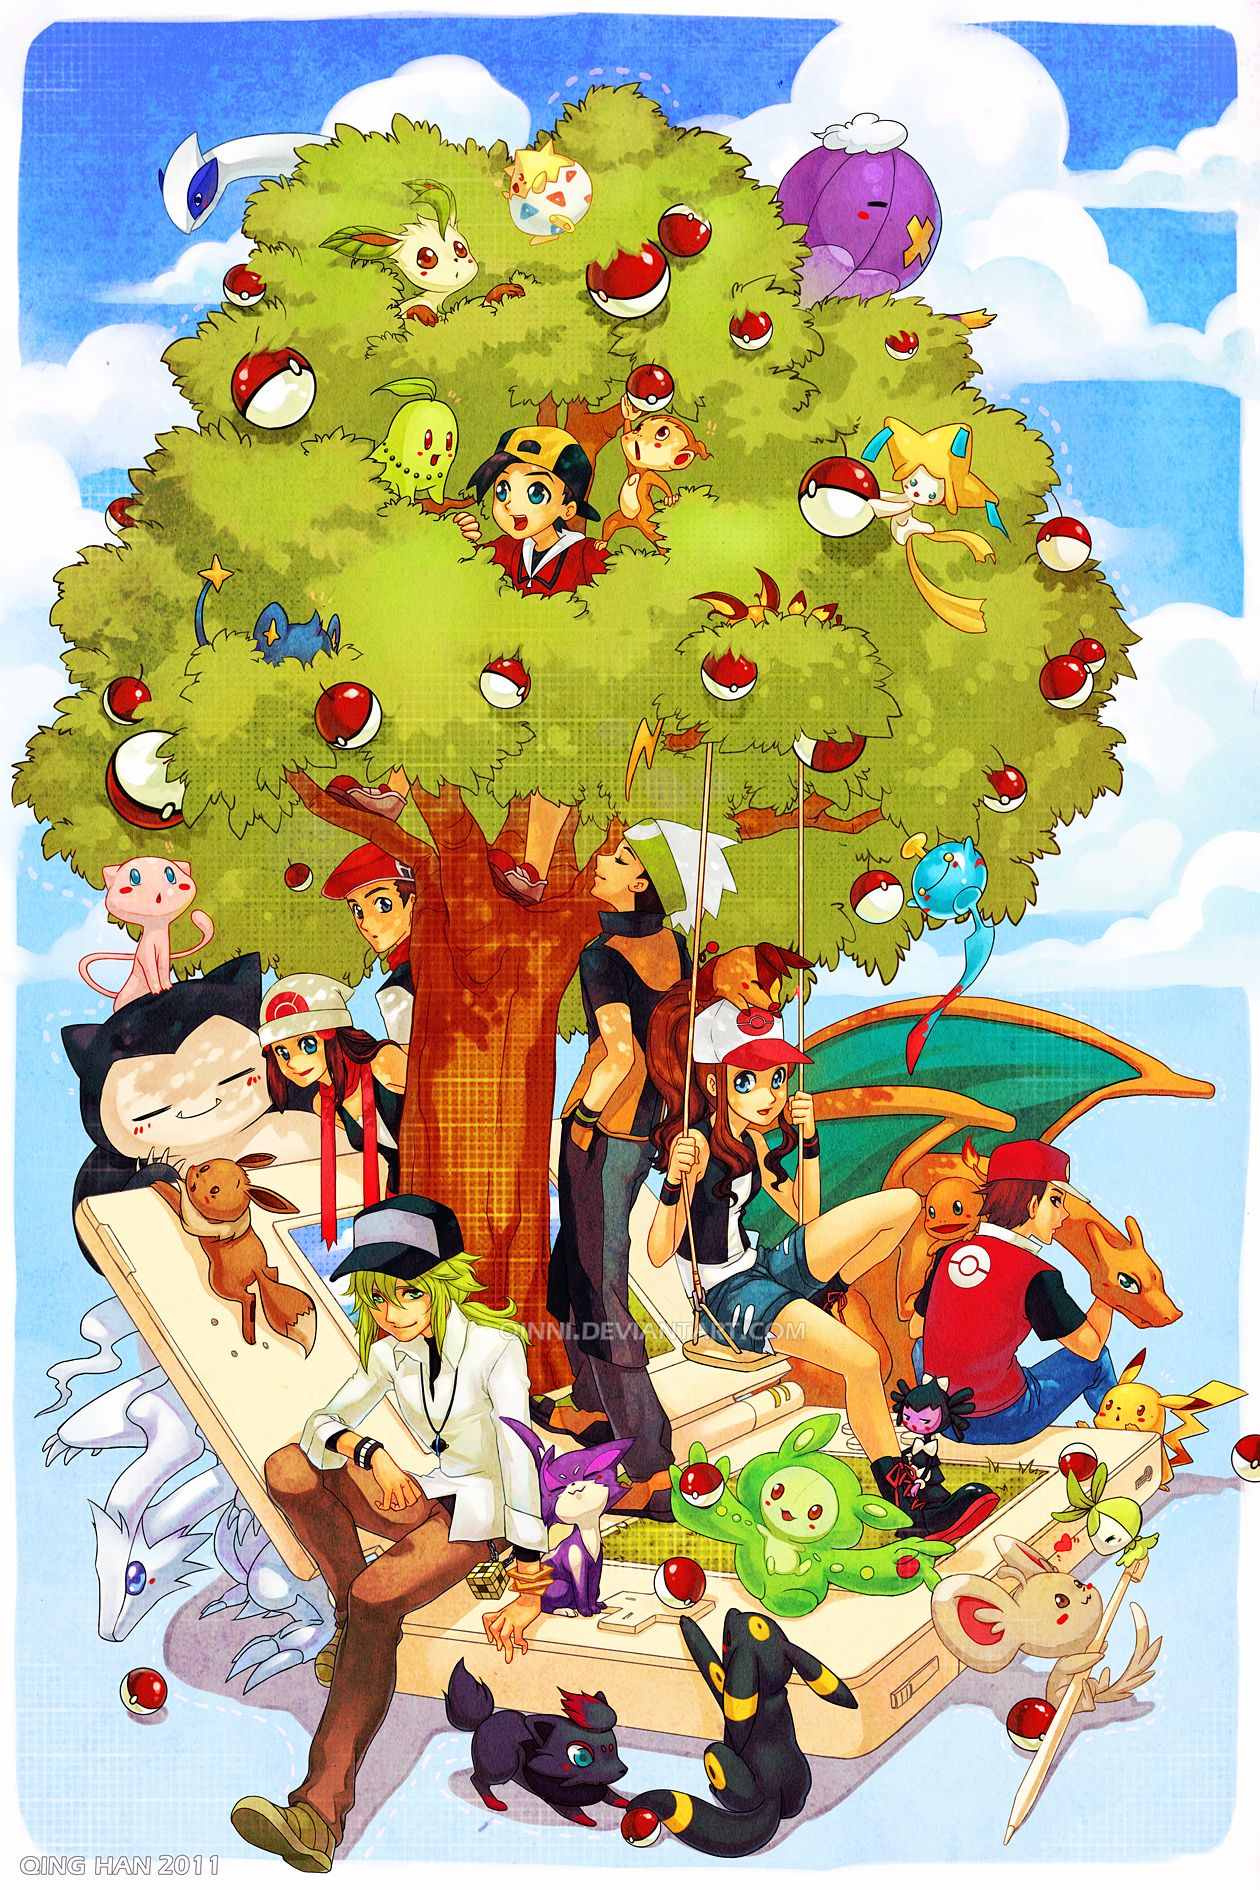 Pokemon - DS Style by =Qinni